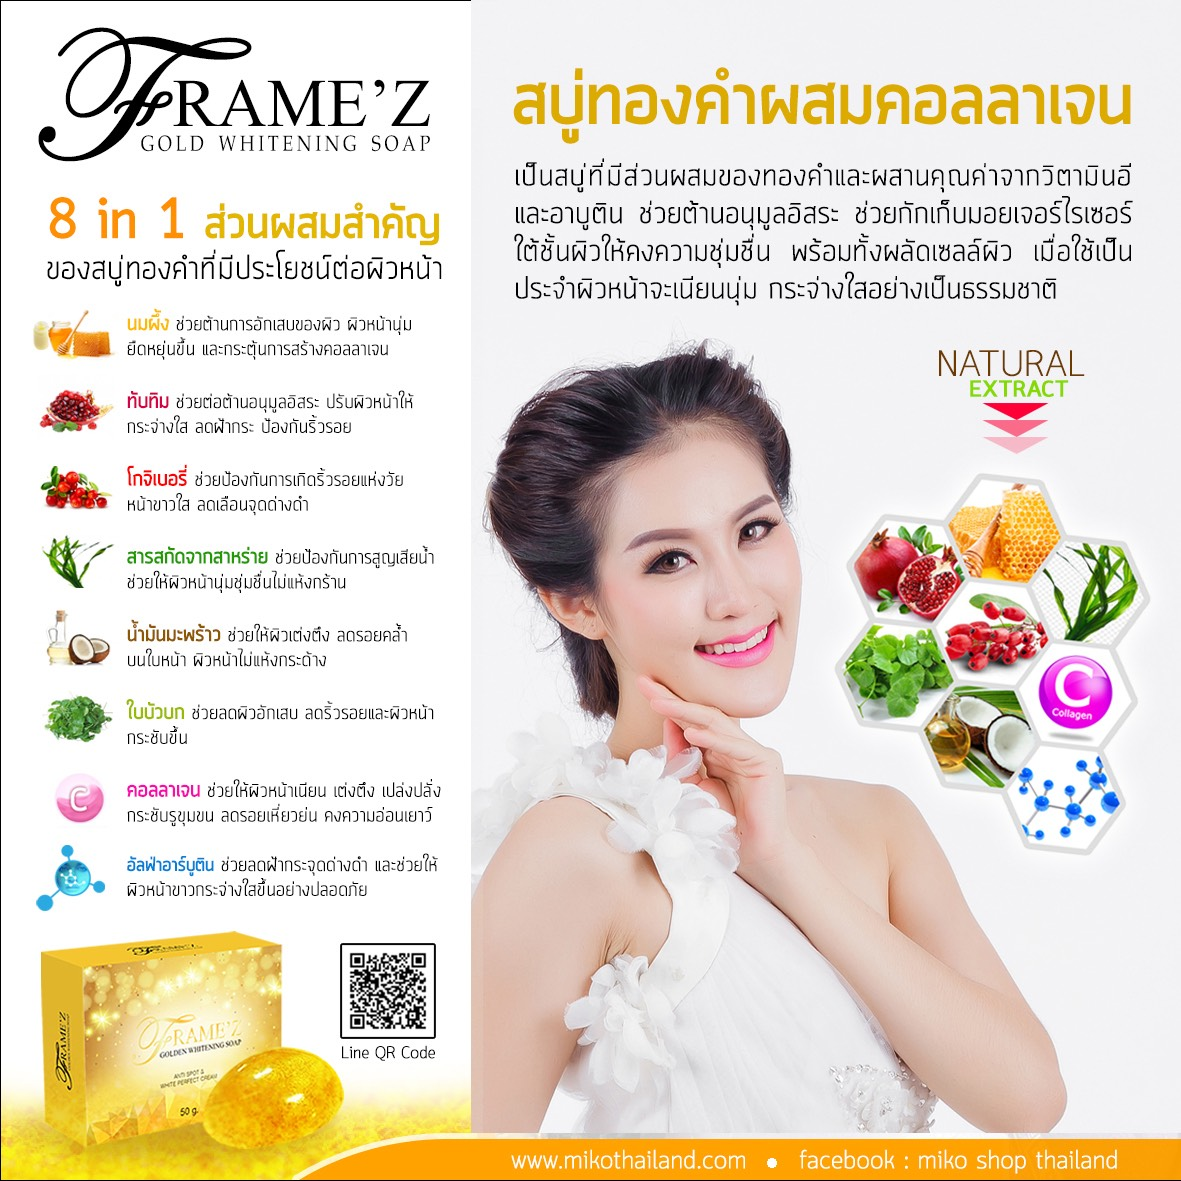 Soap Face Gold Whitening Block Acne Reduce dark spots. Soft and moisturizing face with 8 important ingredients for skin.